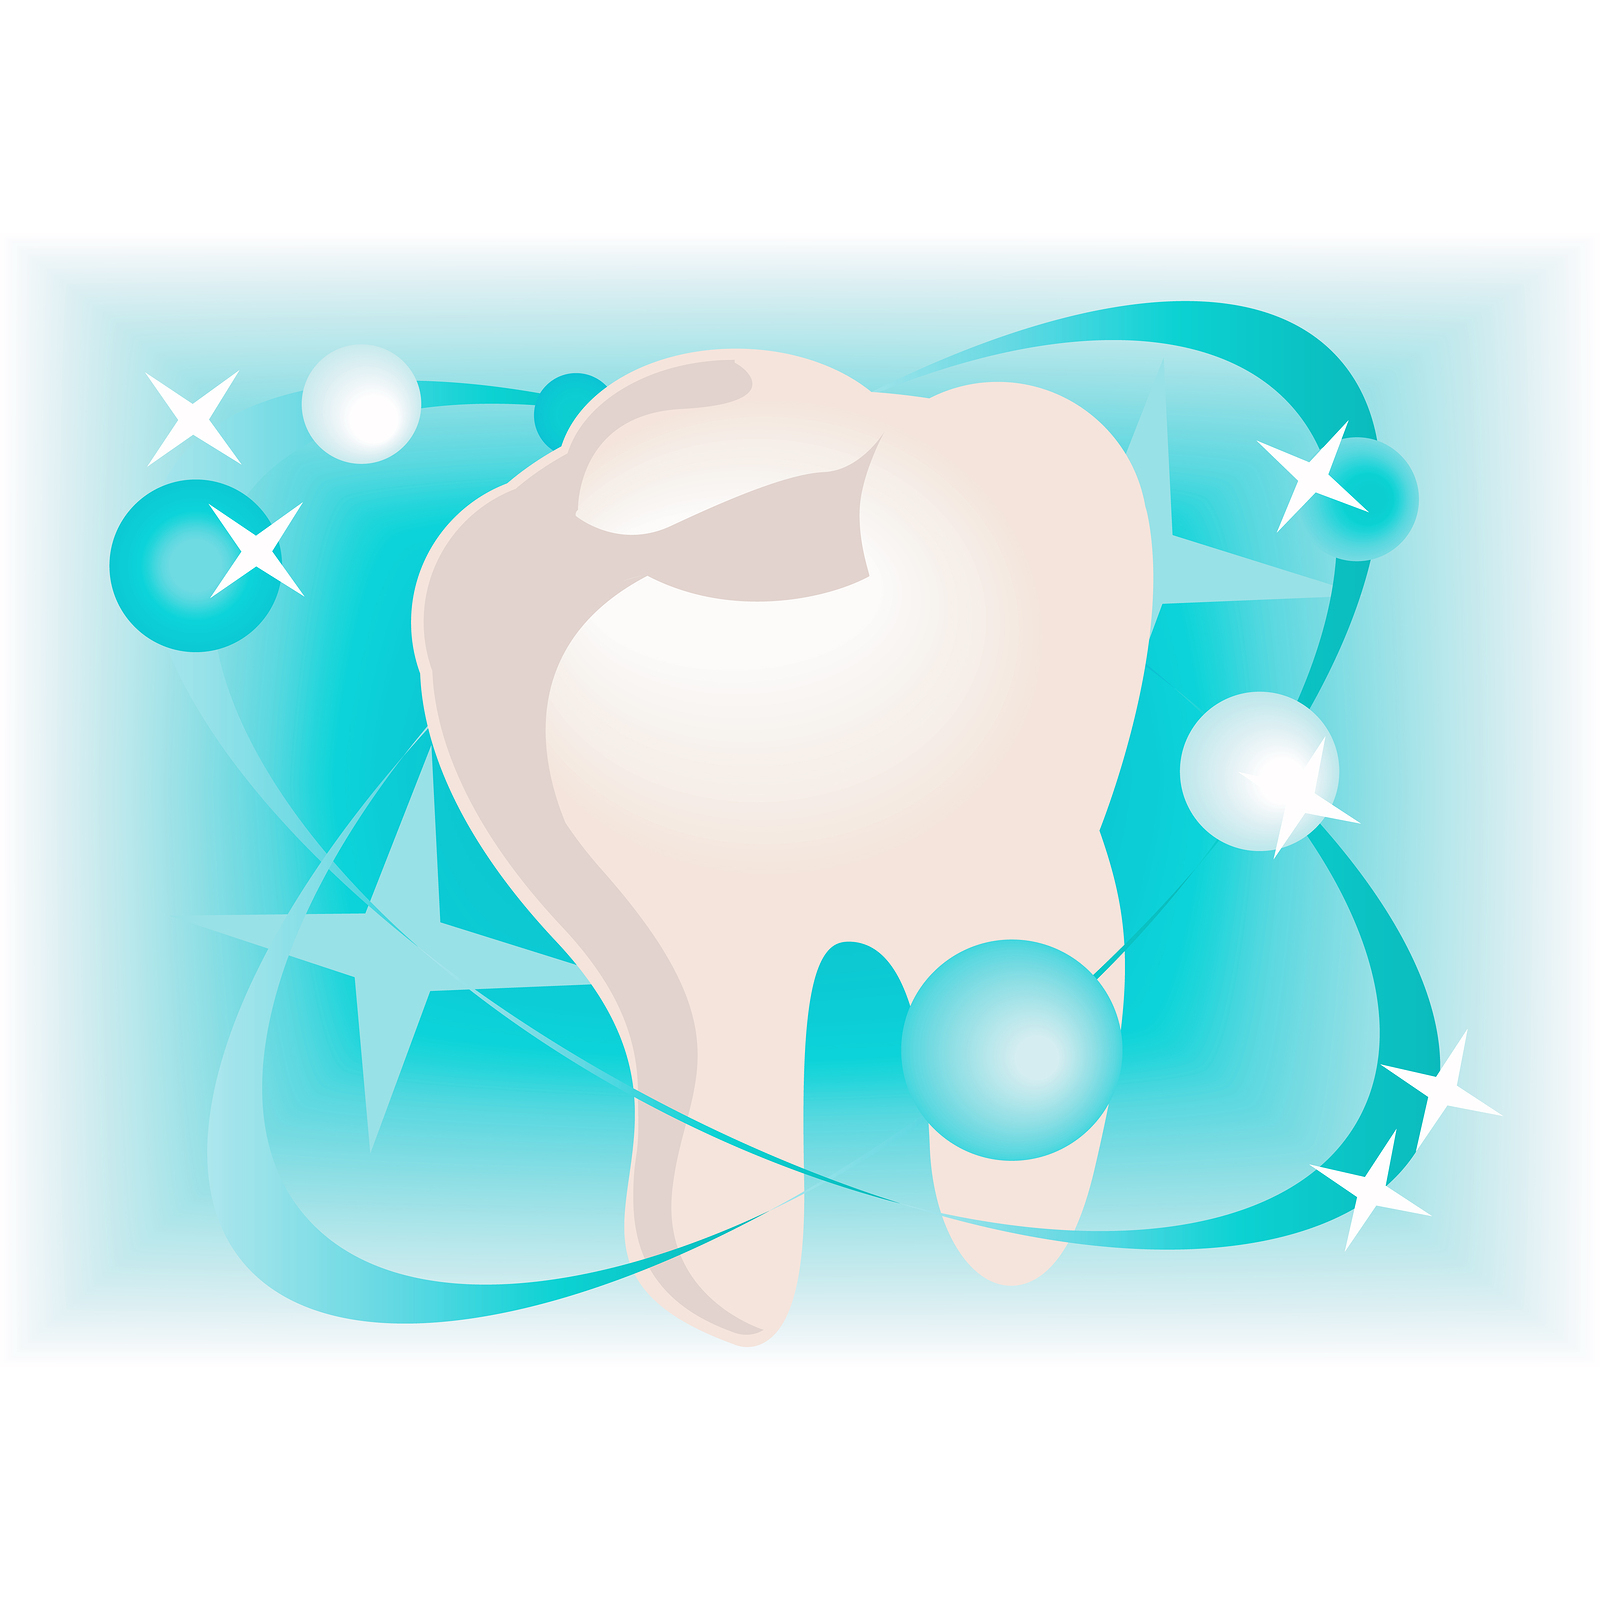 Methuen Periodontics & Implant Dentistry